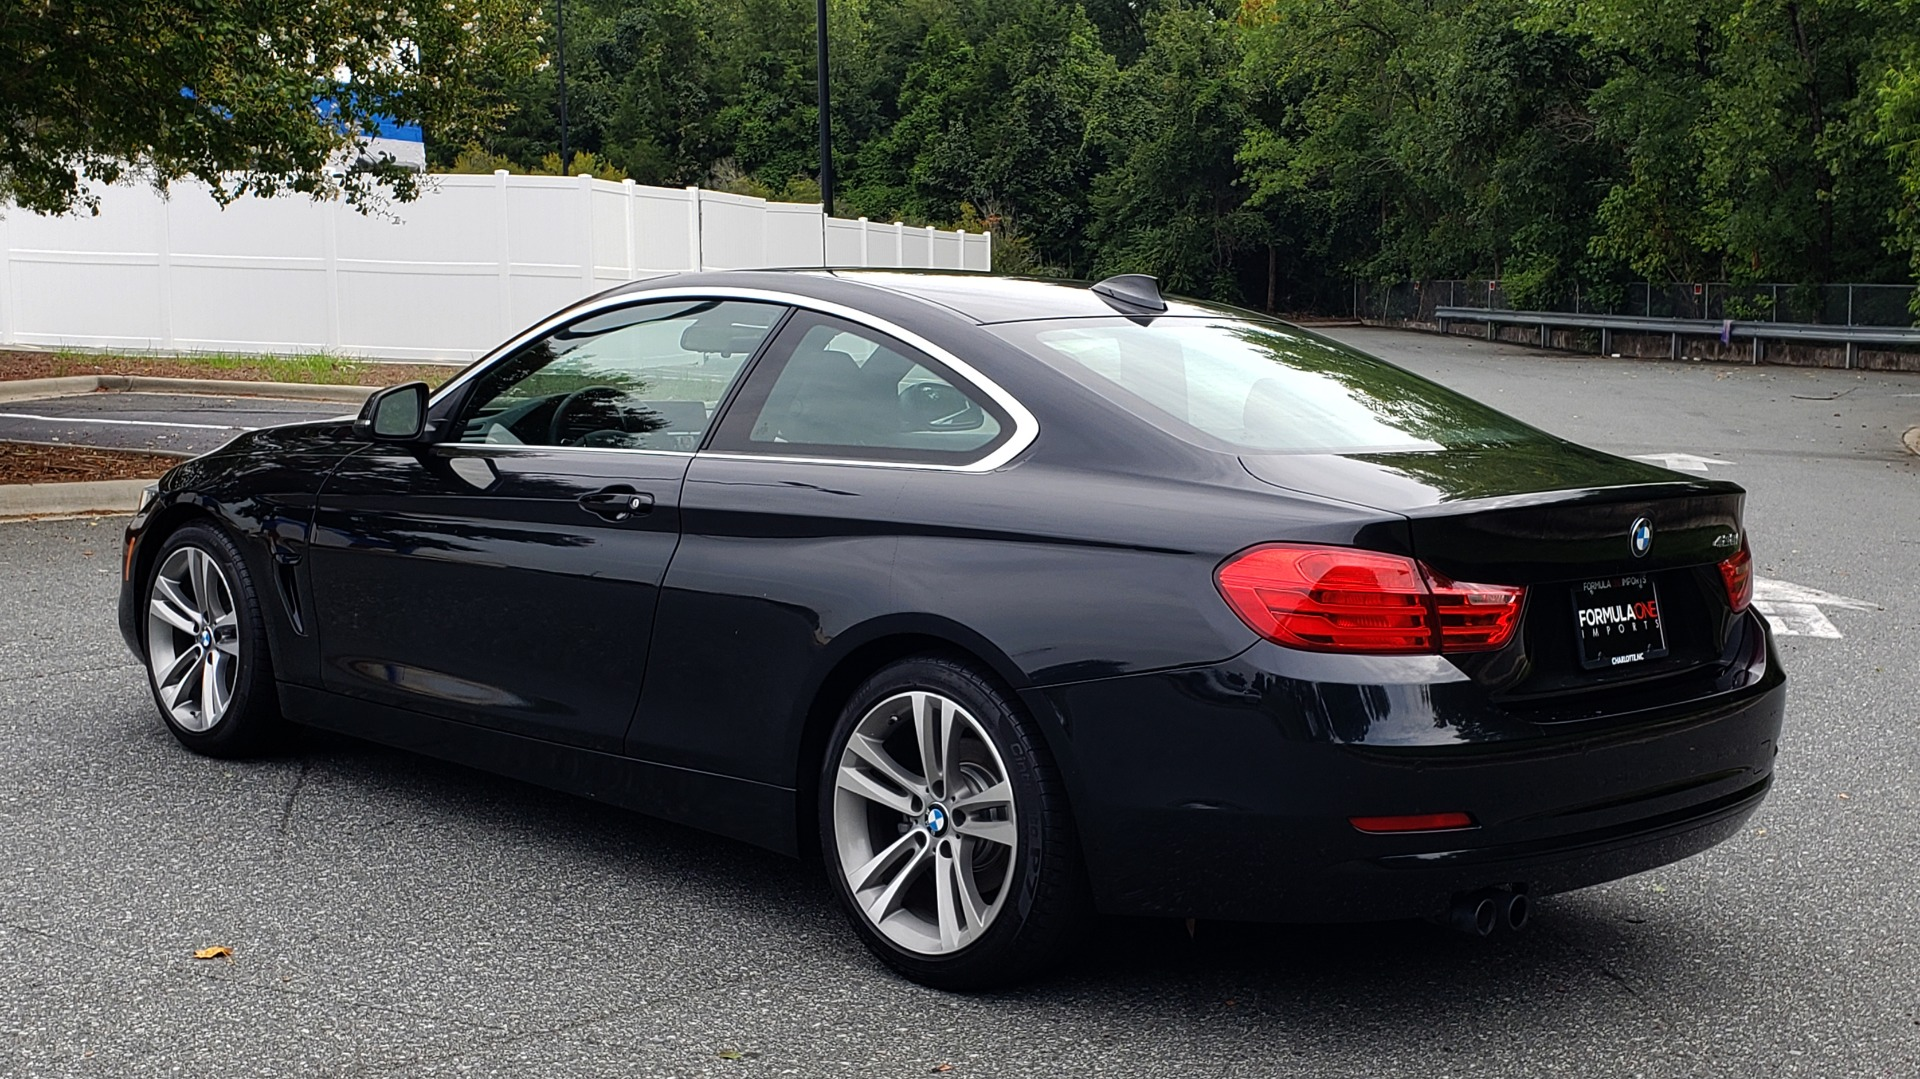 Used 2016 BMW 4 SERIES 428I PREMIUM COUPE / 2.0L / AUTO / NAV / SUNROOF / HEATED SEATS for sale $22,995 at Formula Imports in Charlotte NC 28227 3